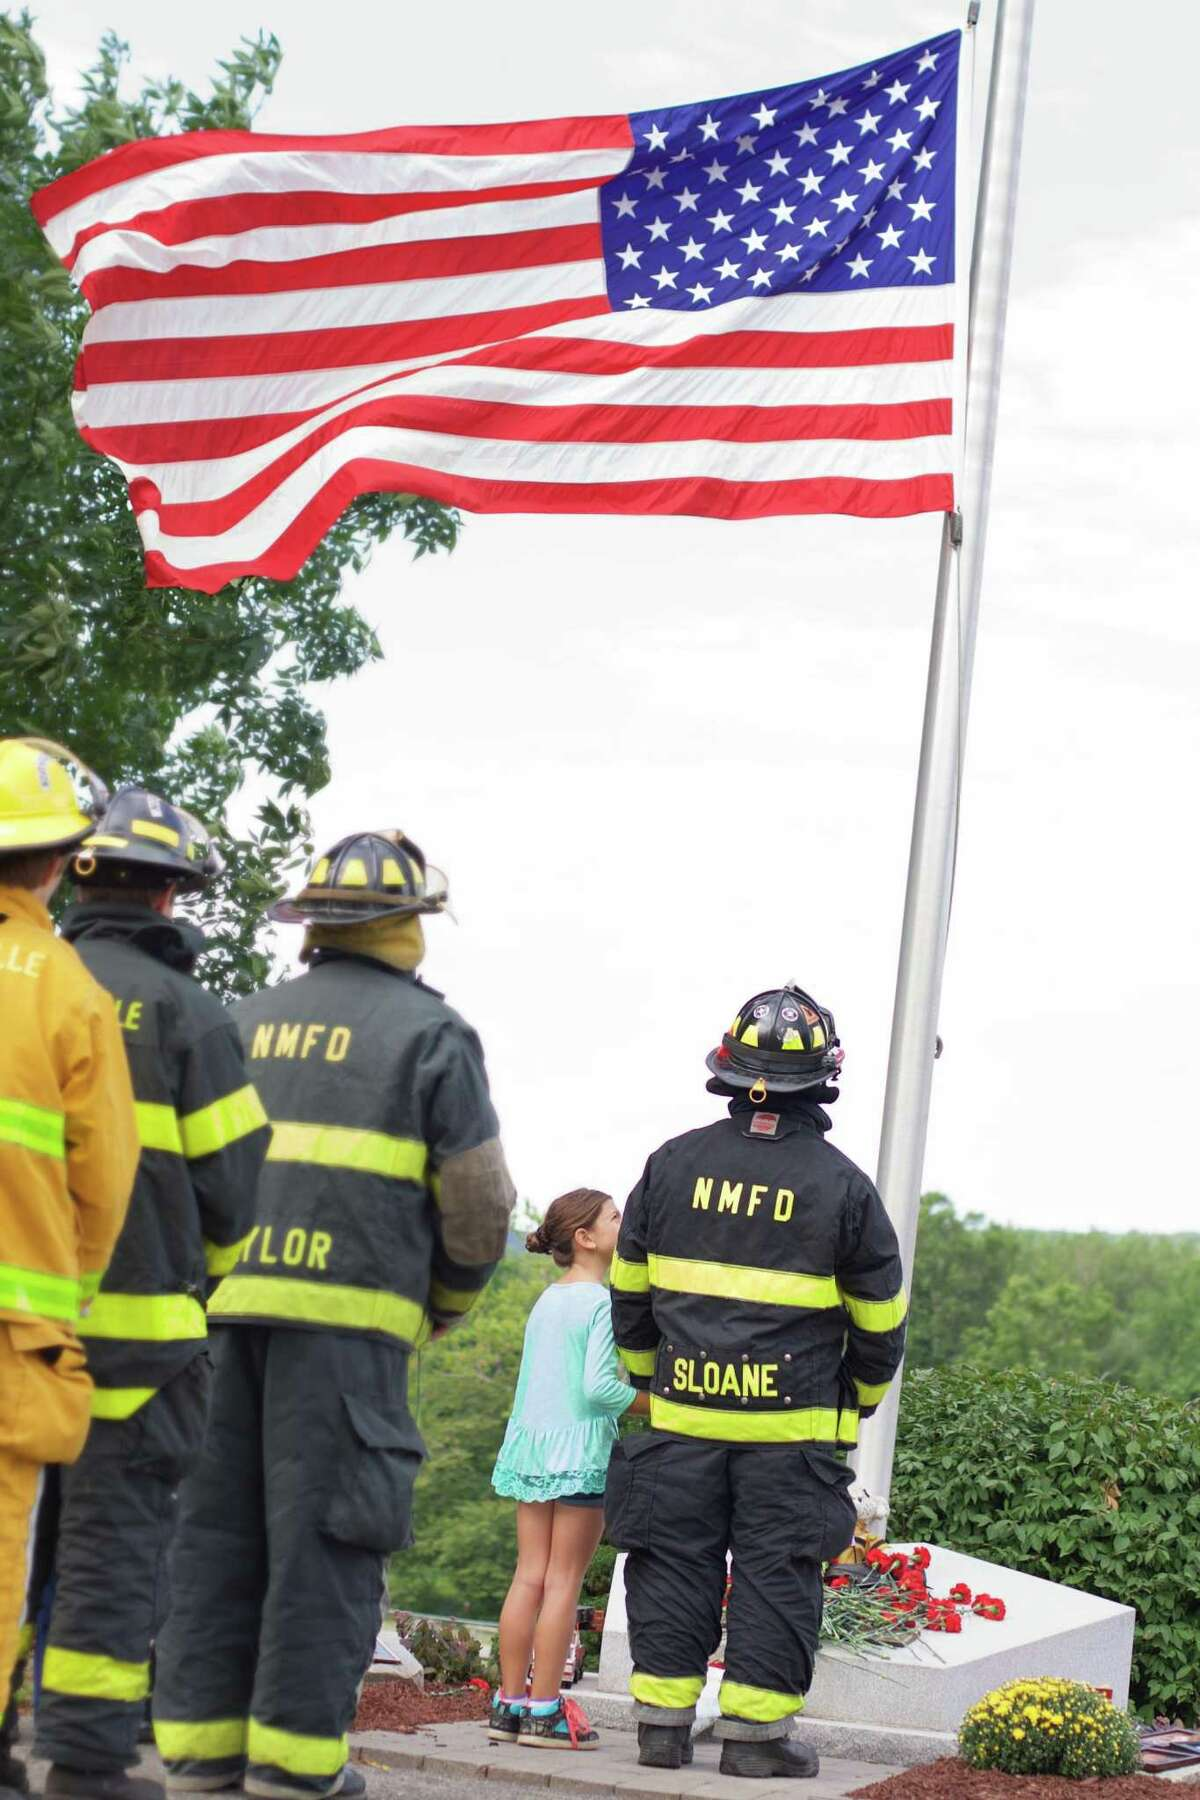 On Sunday, September 11, 2016, New Milford held a 9/11 Memorial Ceremony at the town's memorial on Patriot's Way. Tom Sloane from the New Milford Fire Department and Jillian Sloane (age 7) place flowers at the monument base at the end of the ceremony.